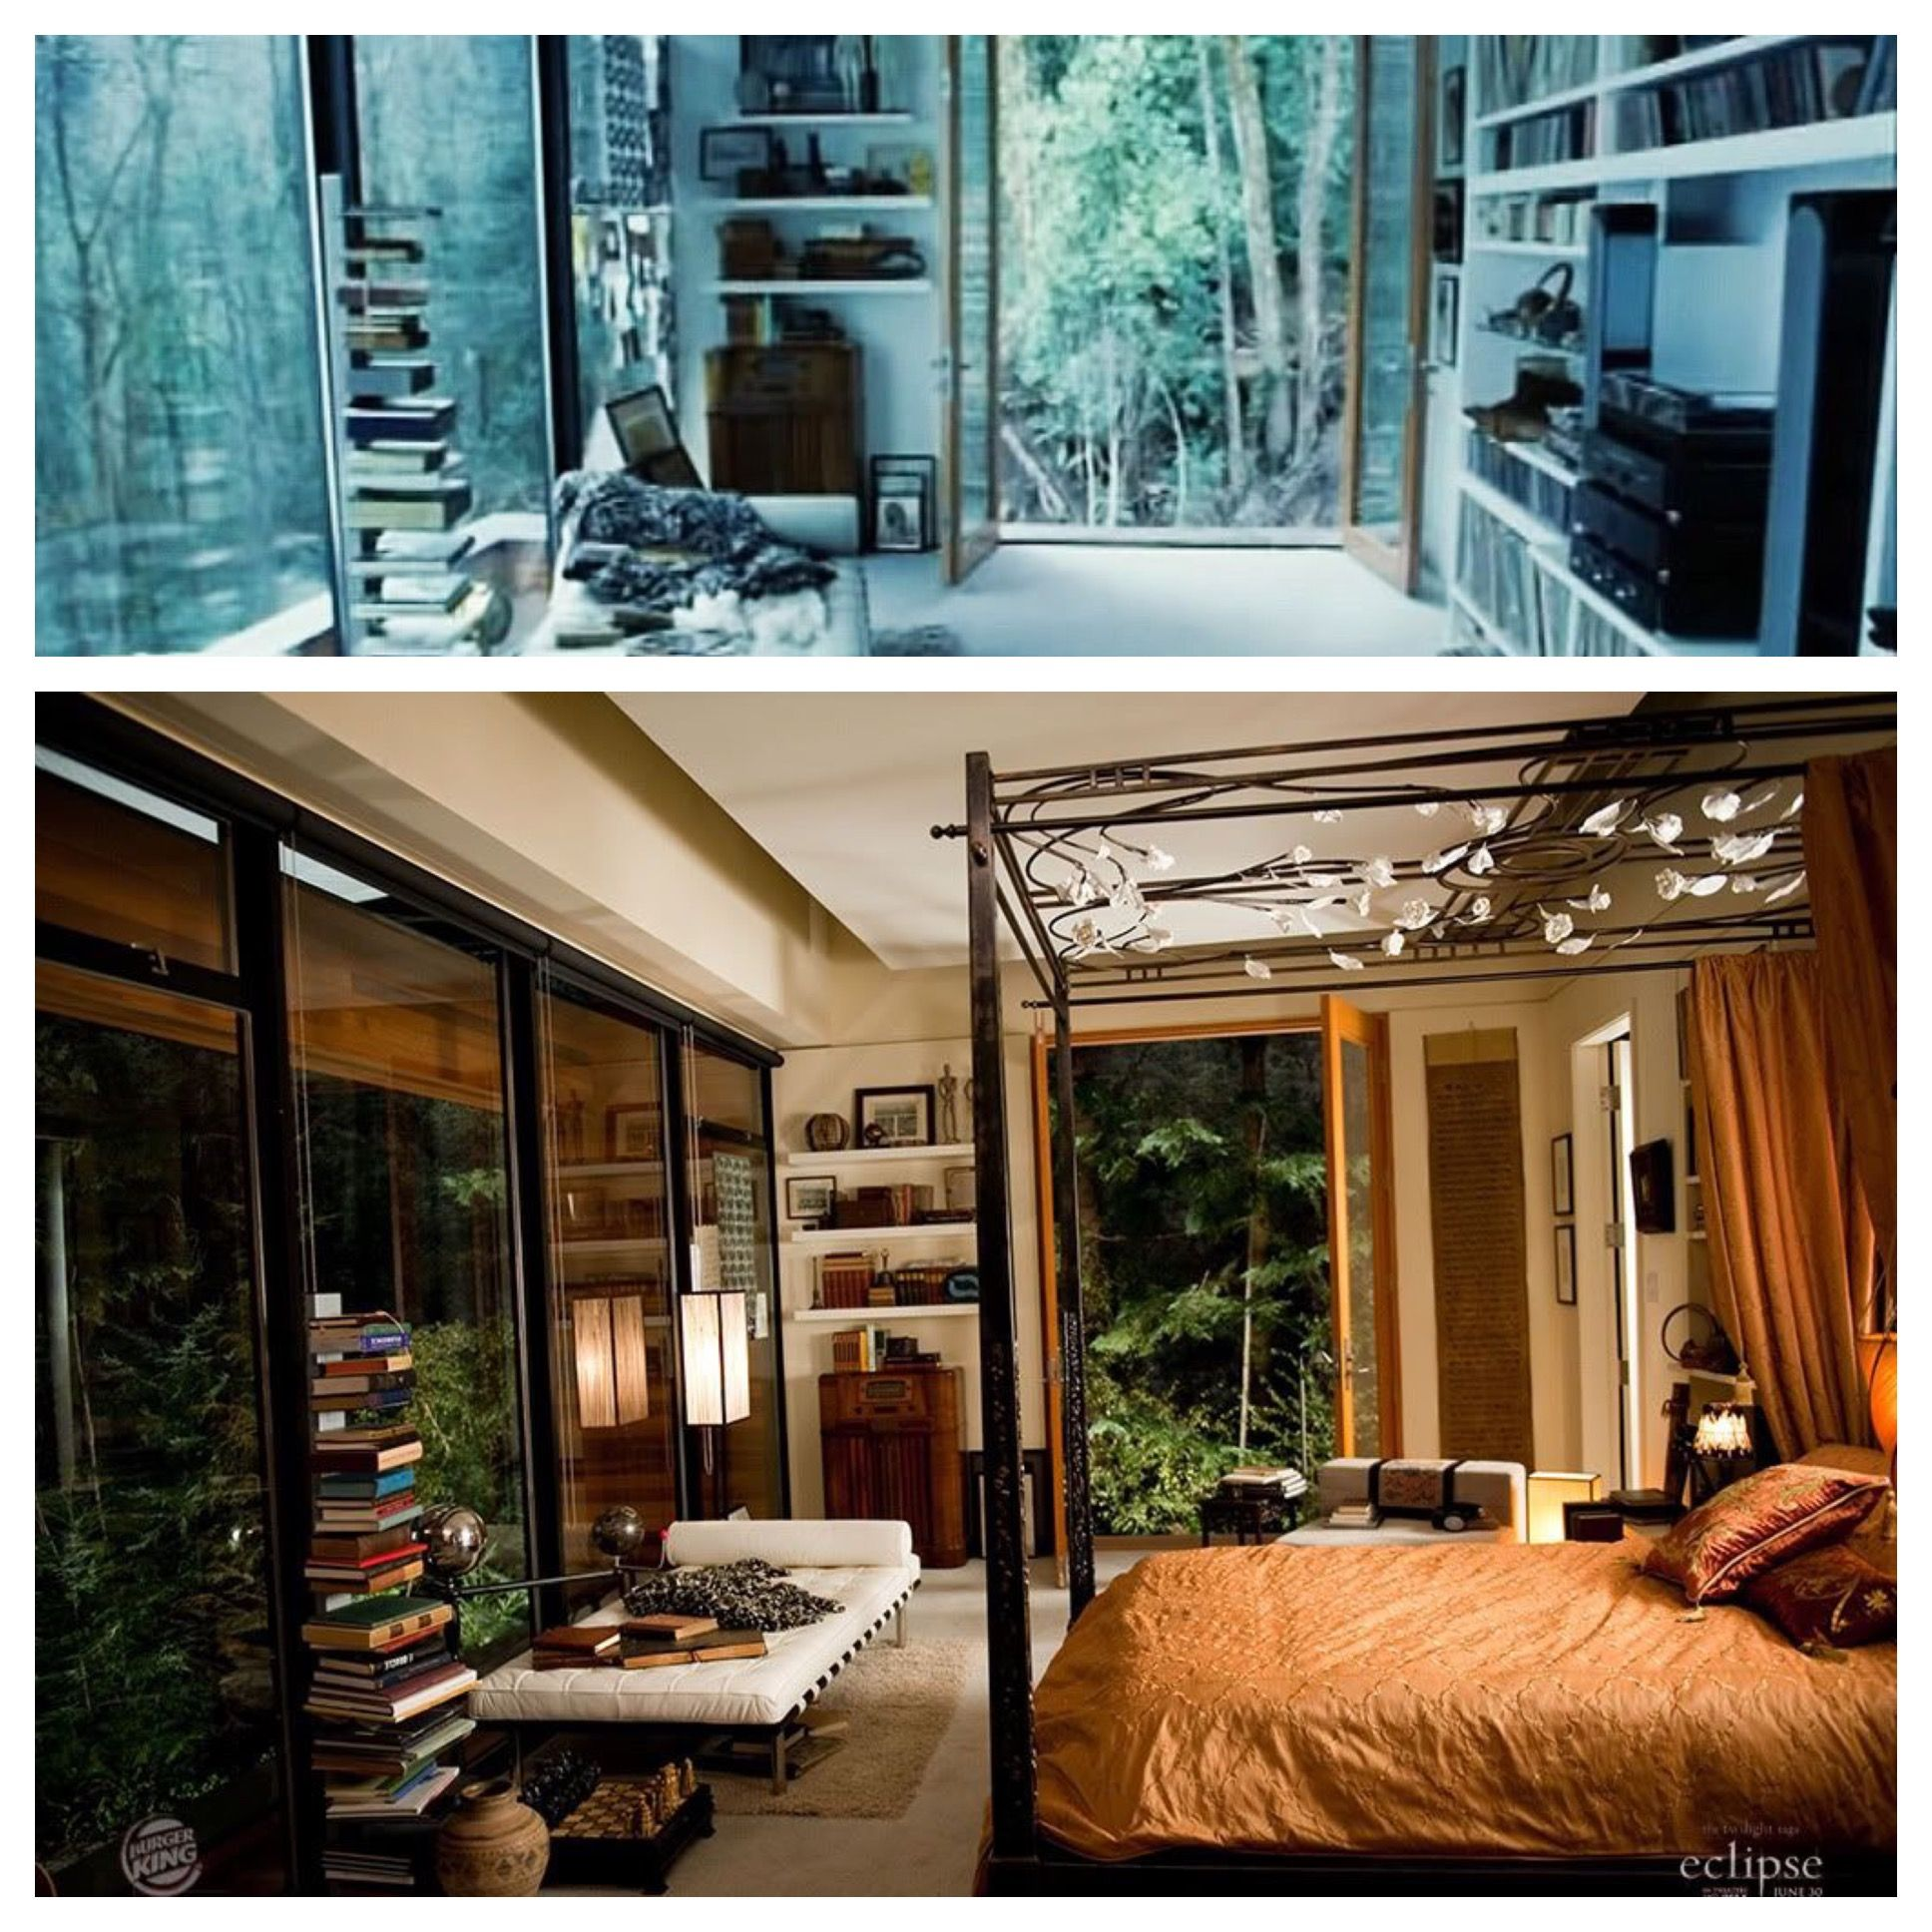 Edwards Bedroom Before And After Bella Home Dream Home Design Twilight House